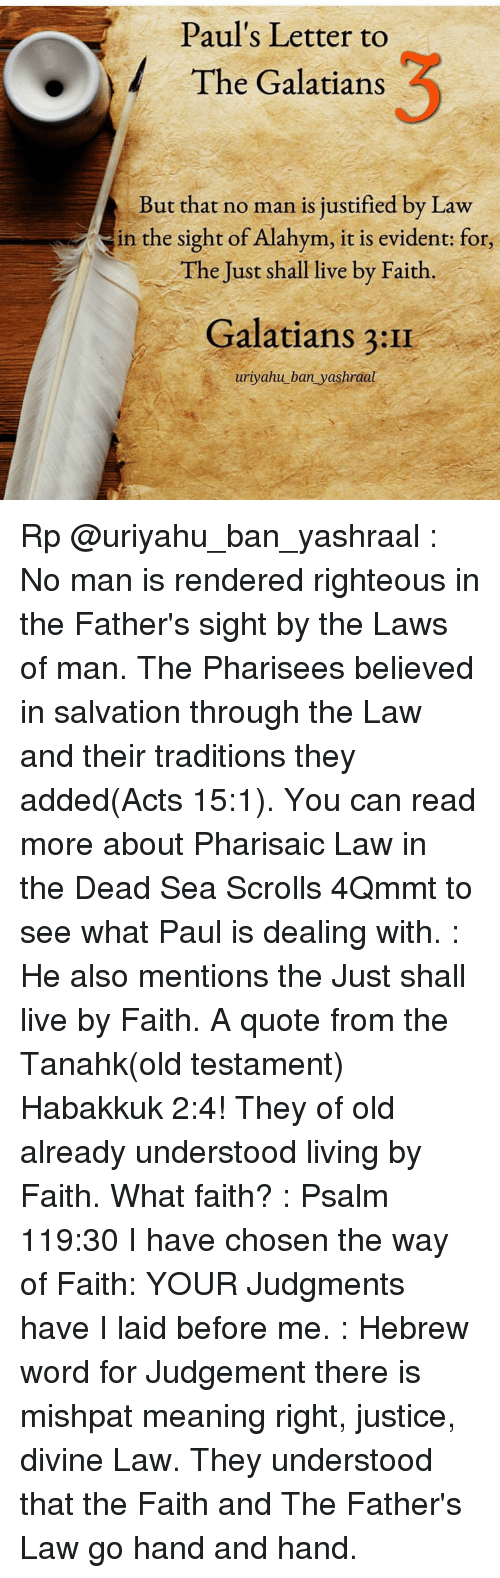 Memes, Justified, and Righteousness: Paul's Letter to  The Galatians  But that no man is justified by Law  in the sight of Alahym, it is evident: for,  The Just shall live by Faith  Galatians 3:II  uriyahu ban yashraal Rp @uriyahu_ban_yashraal : No man is rendered righteous in the Father's sight by the Laws of man. The Pharisees believed in salvation through the Law and their traditions they added(Acts 15:1). You can read more about Pharisaic Law in the Dead Sea Scrolls 4Qmmt to see what Paul is dealing with. : He also mentions the Just shall live by Faith. A quote from the Tanahk(old testament) Habakkuk 2:4! They of old already understood living by Faith. What faith? : Psalm 119:30 I have chosen the way of Faith: YOUR Judgments have I laid before me. : Hebrew word for Judgement there is mishpat meaning right, justice, divine Law. They understood that the Faith and The Father's Law go hand and hand.